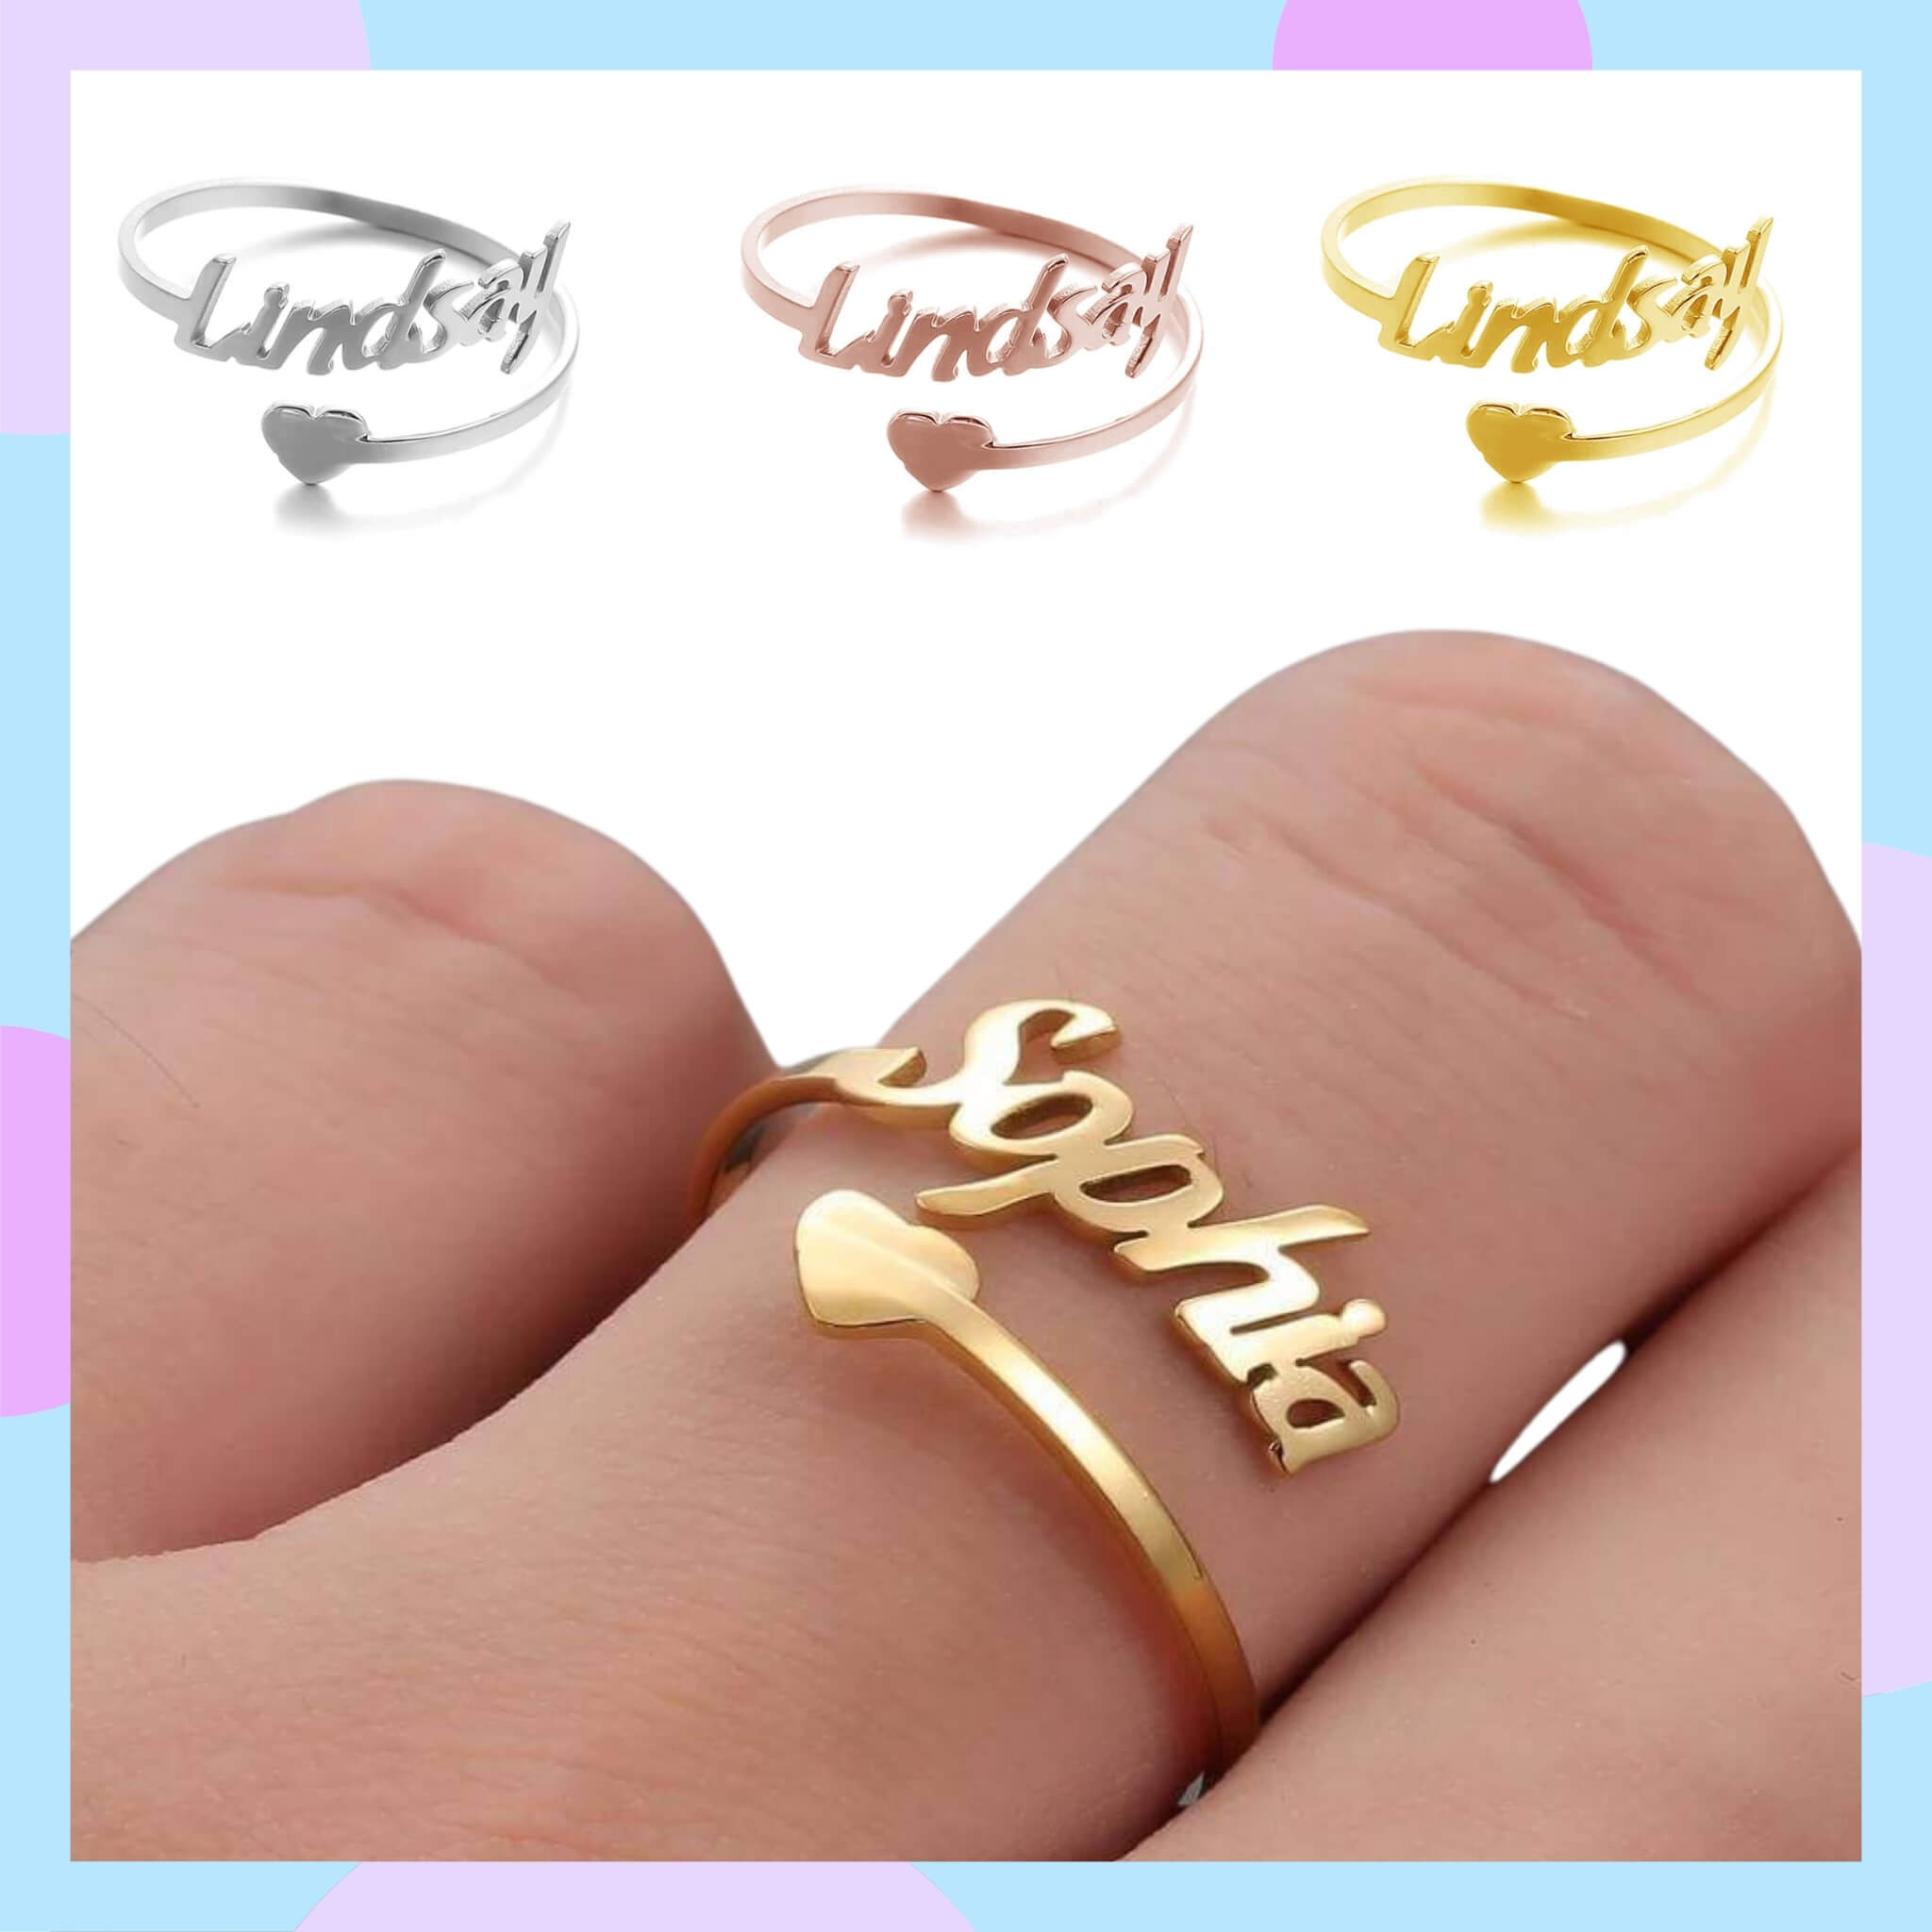 Design AirPods Custom Made Jewelry I Create Your Own Rings and Necklaces